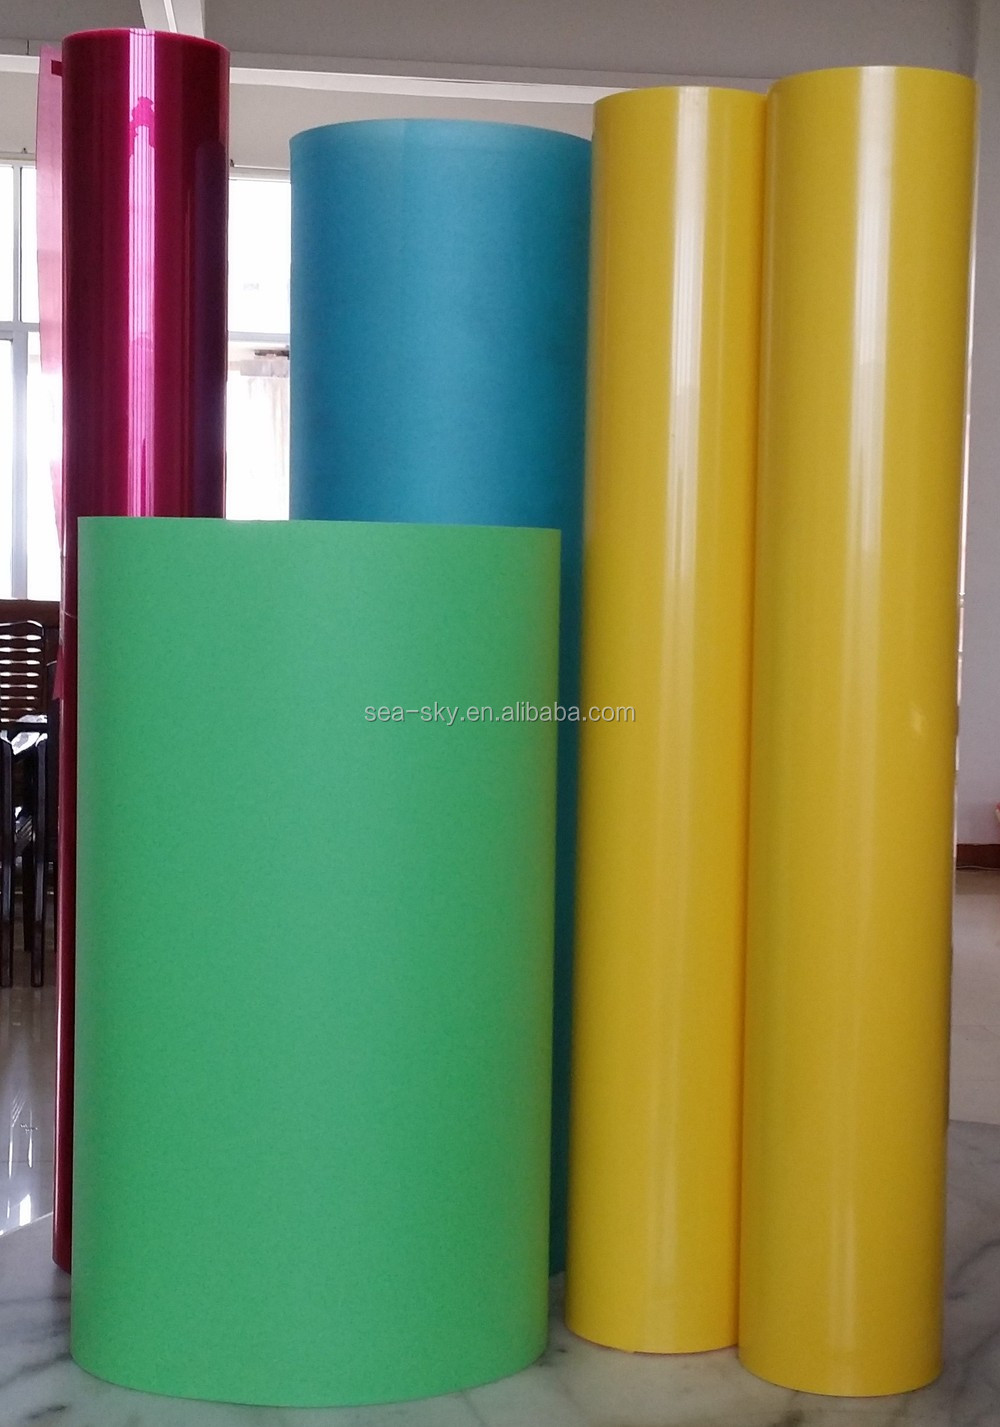 good price with any color of pp solid resign sheet